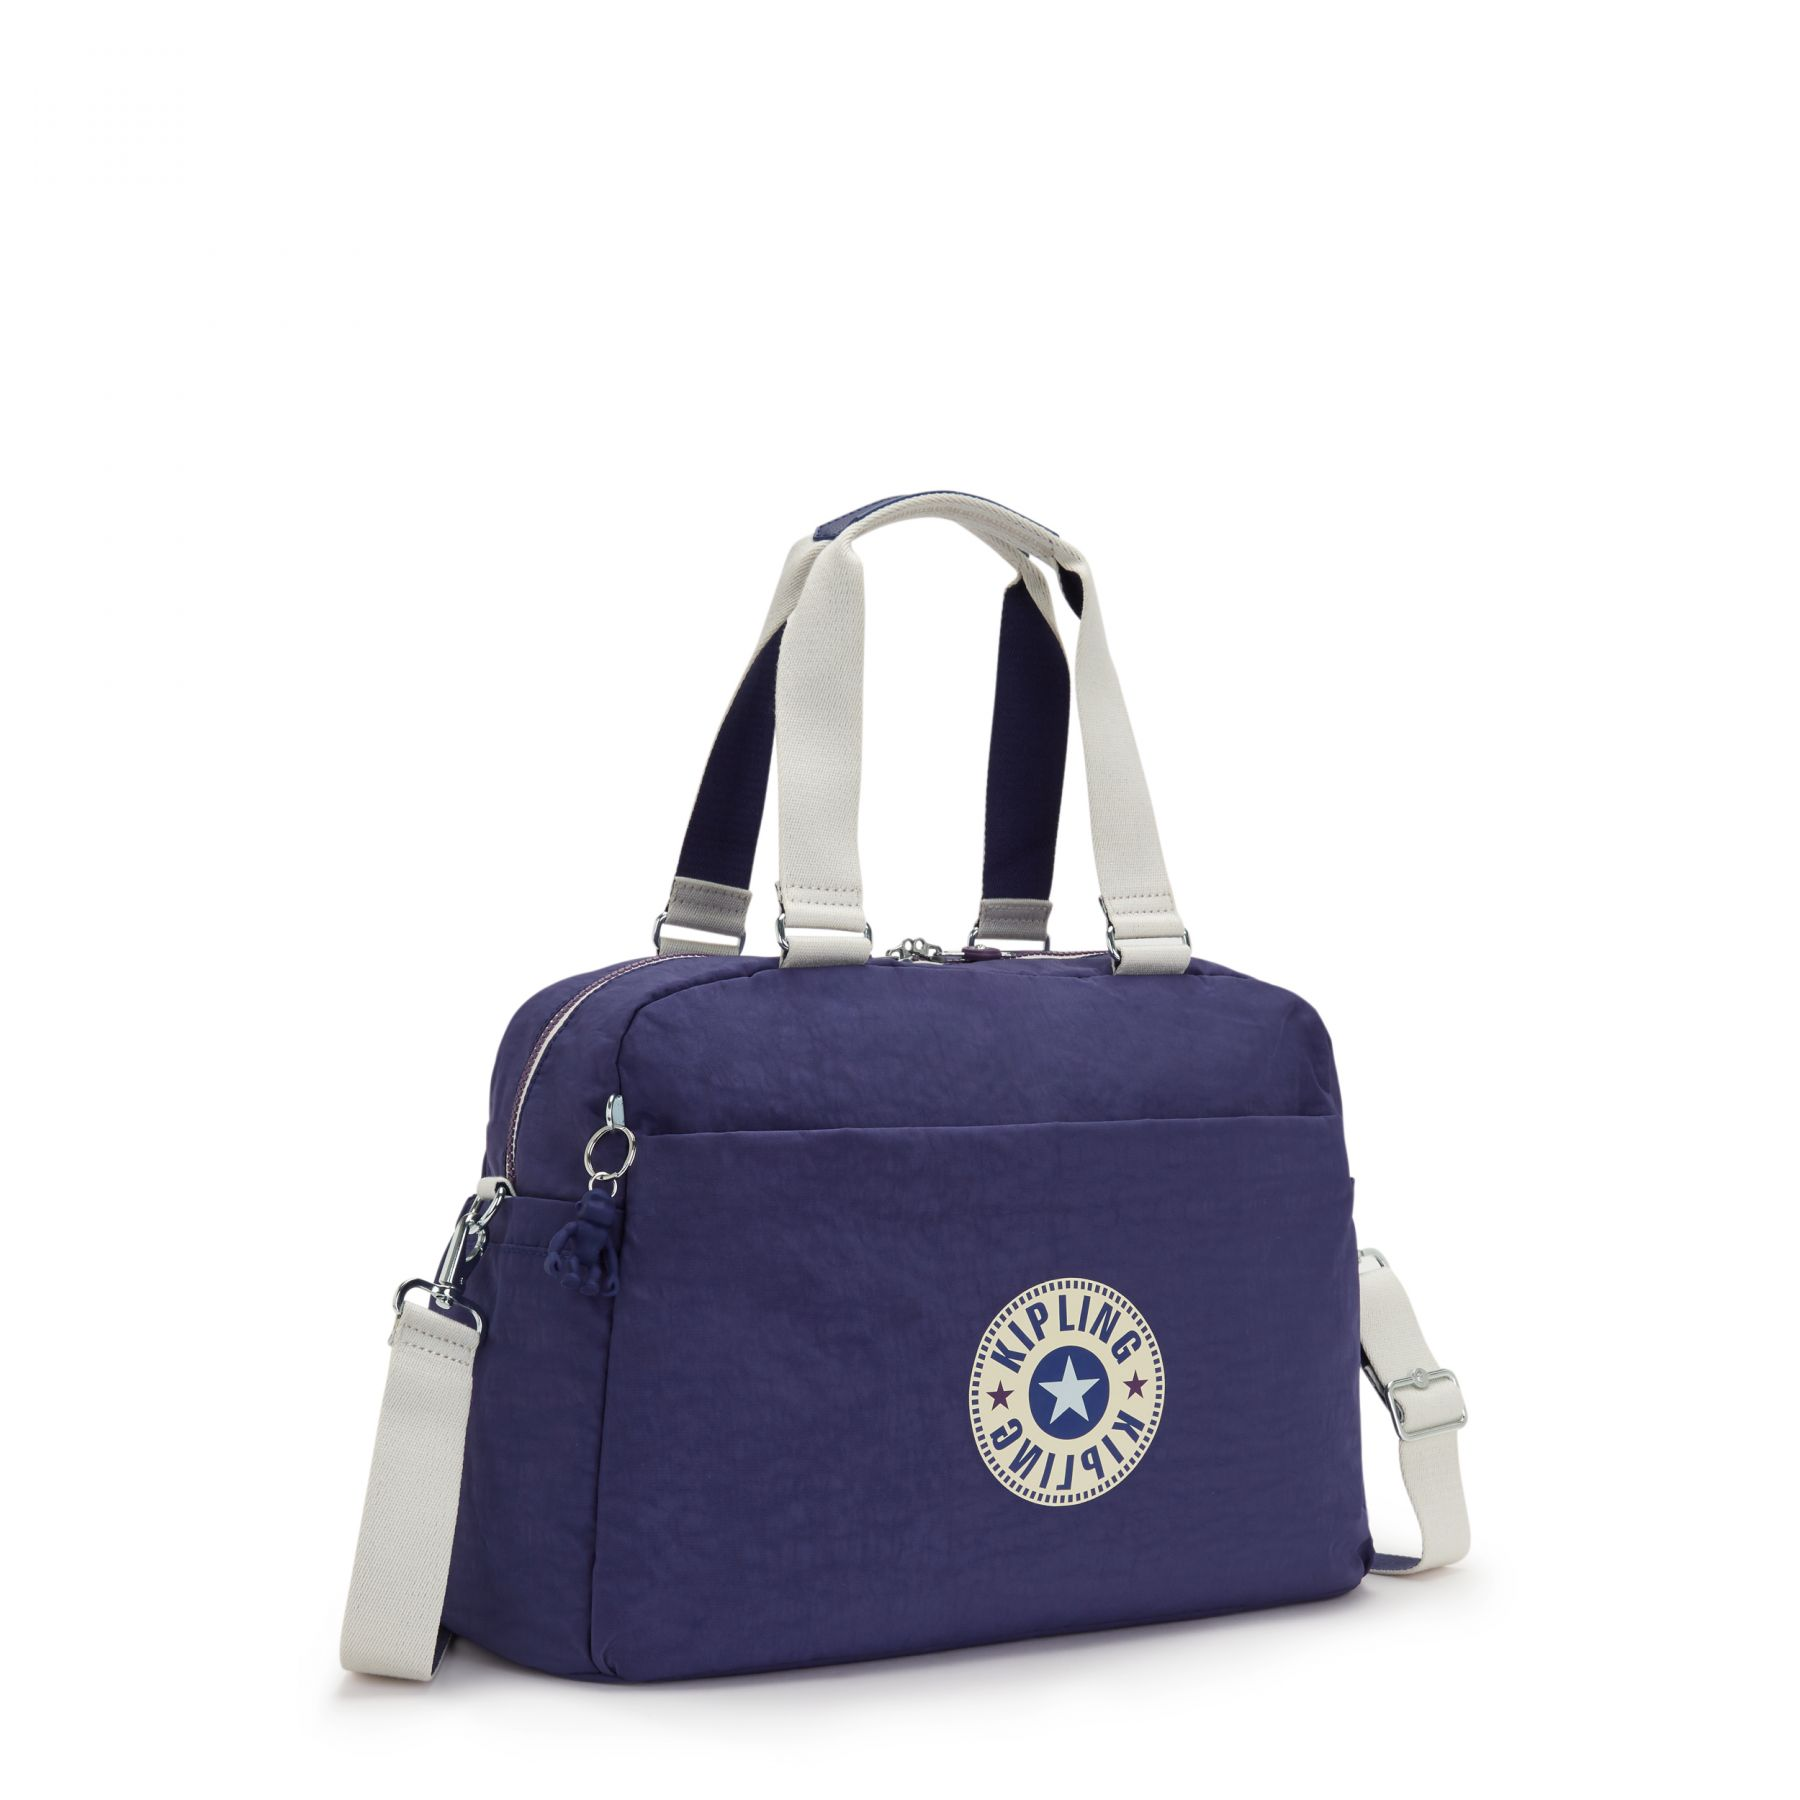 DENY LUGGAGE by Kipling - view 4